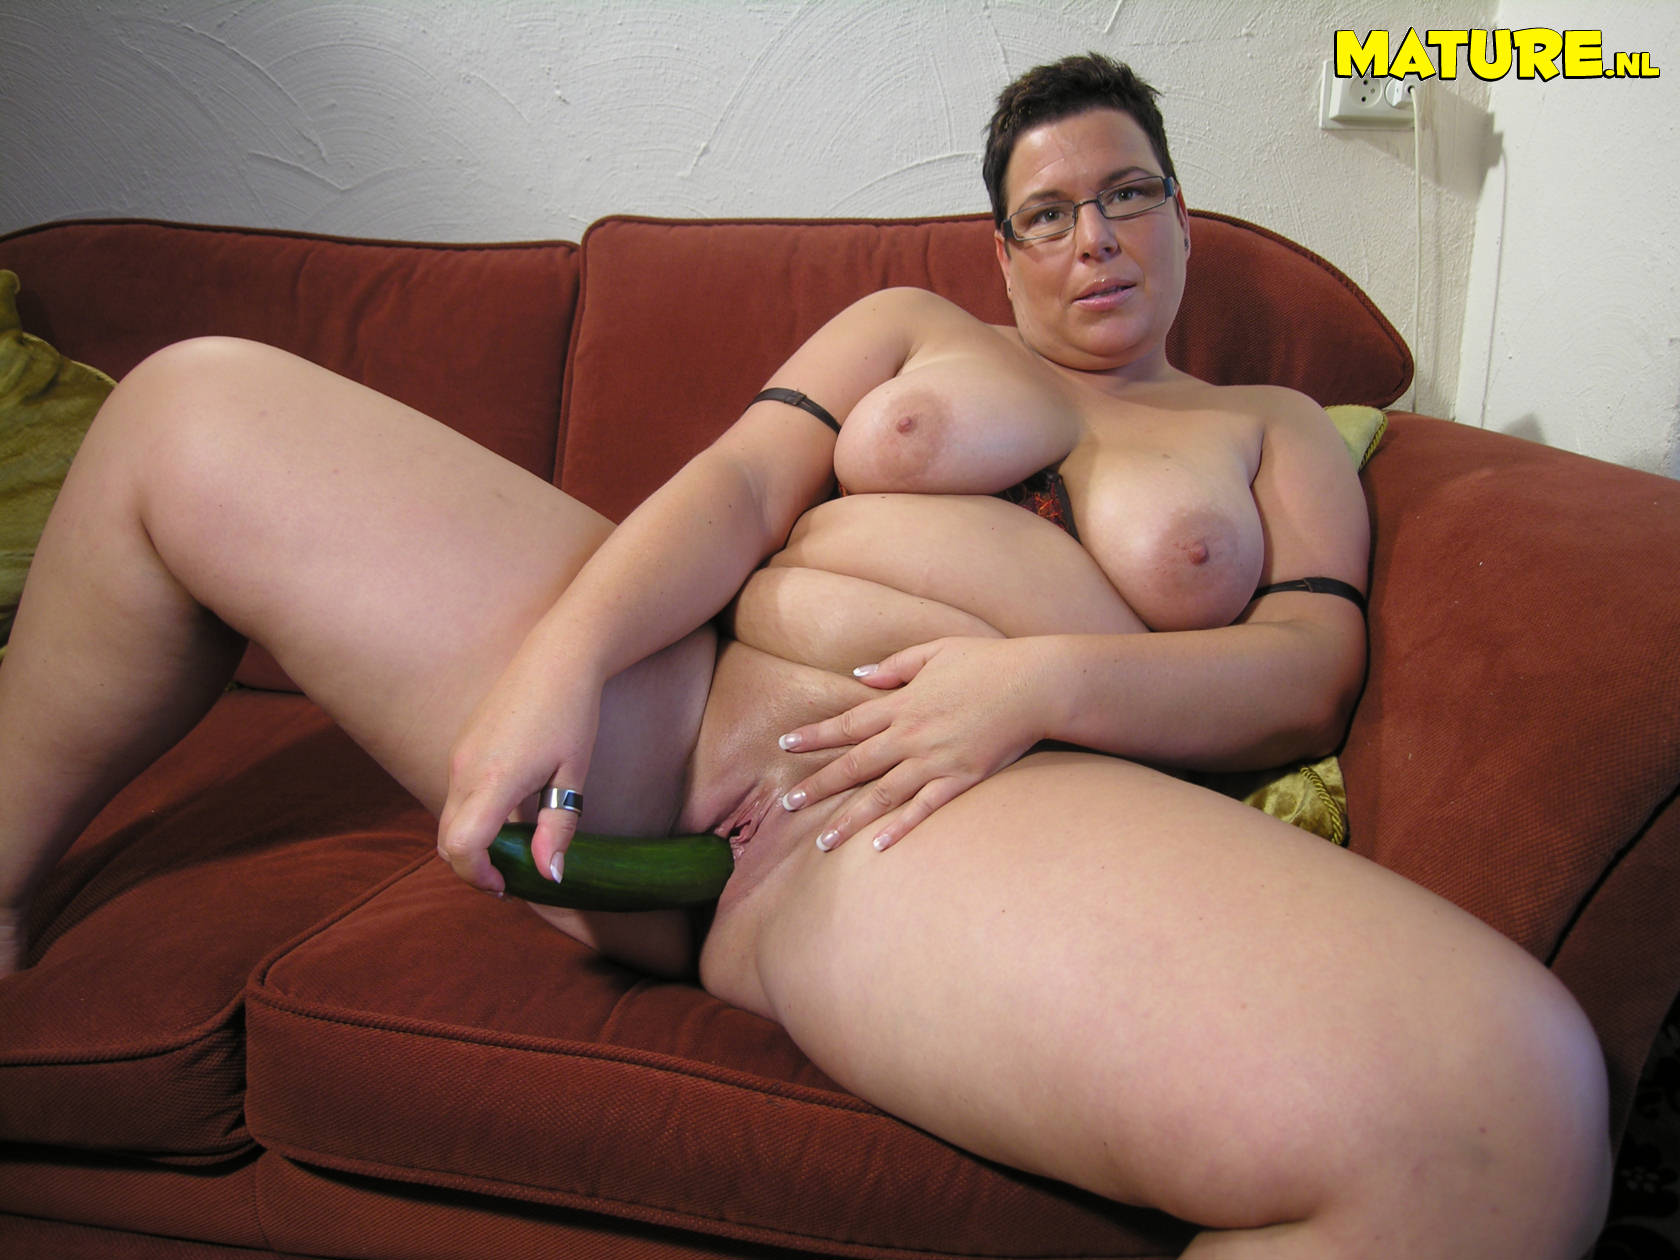 Naked mature women playing